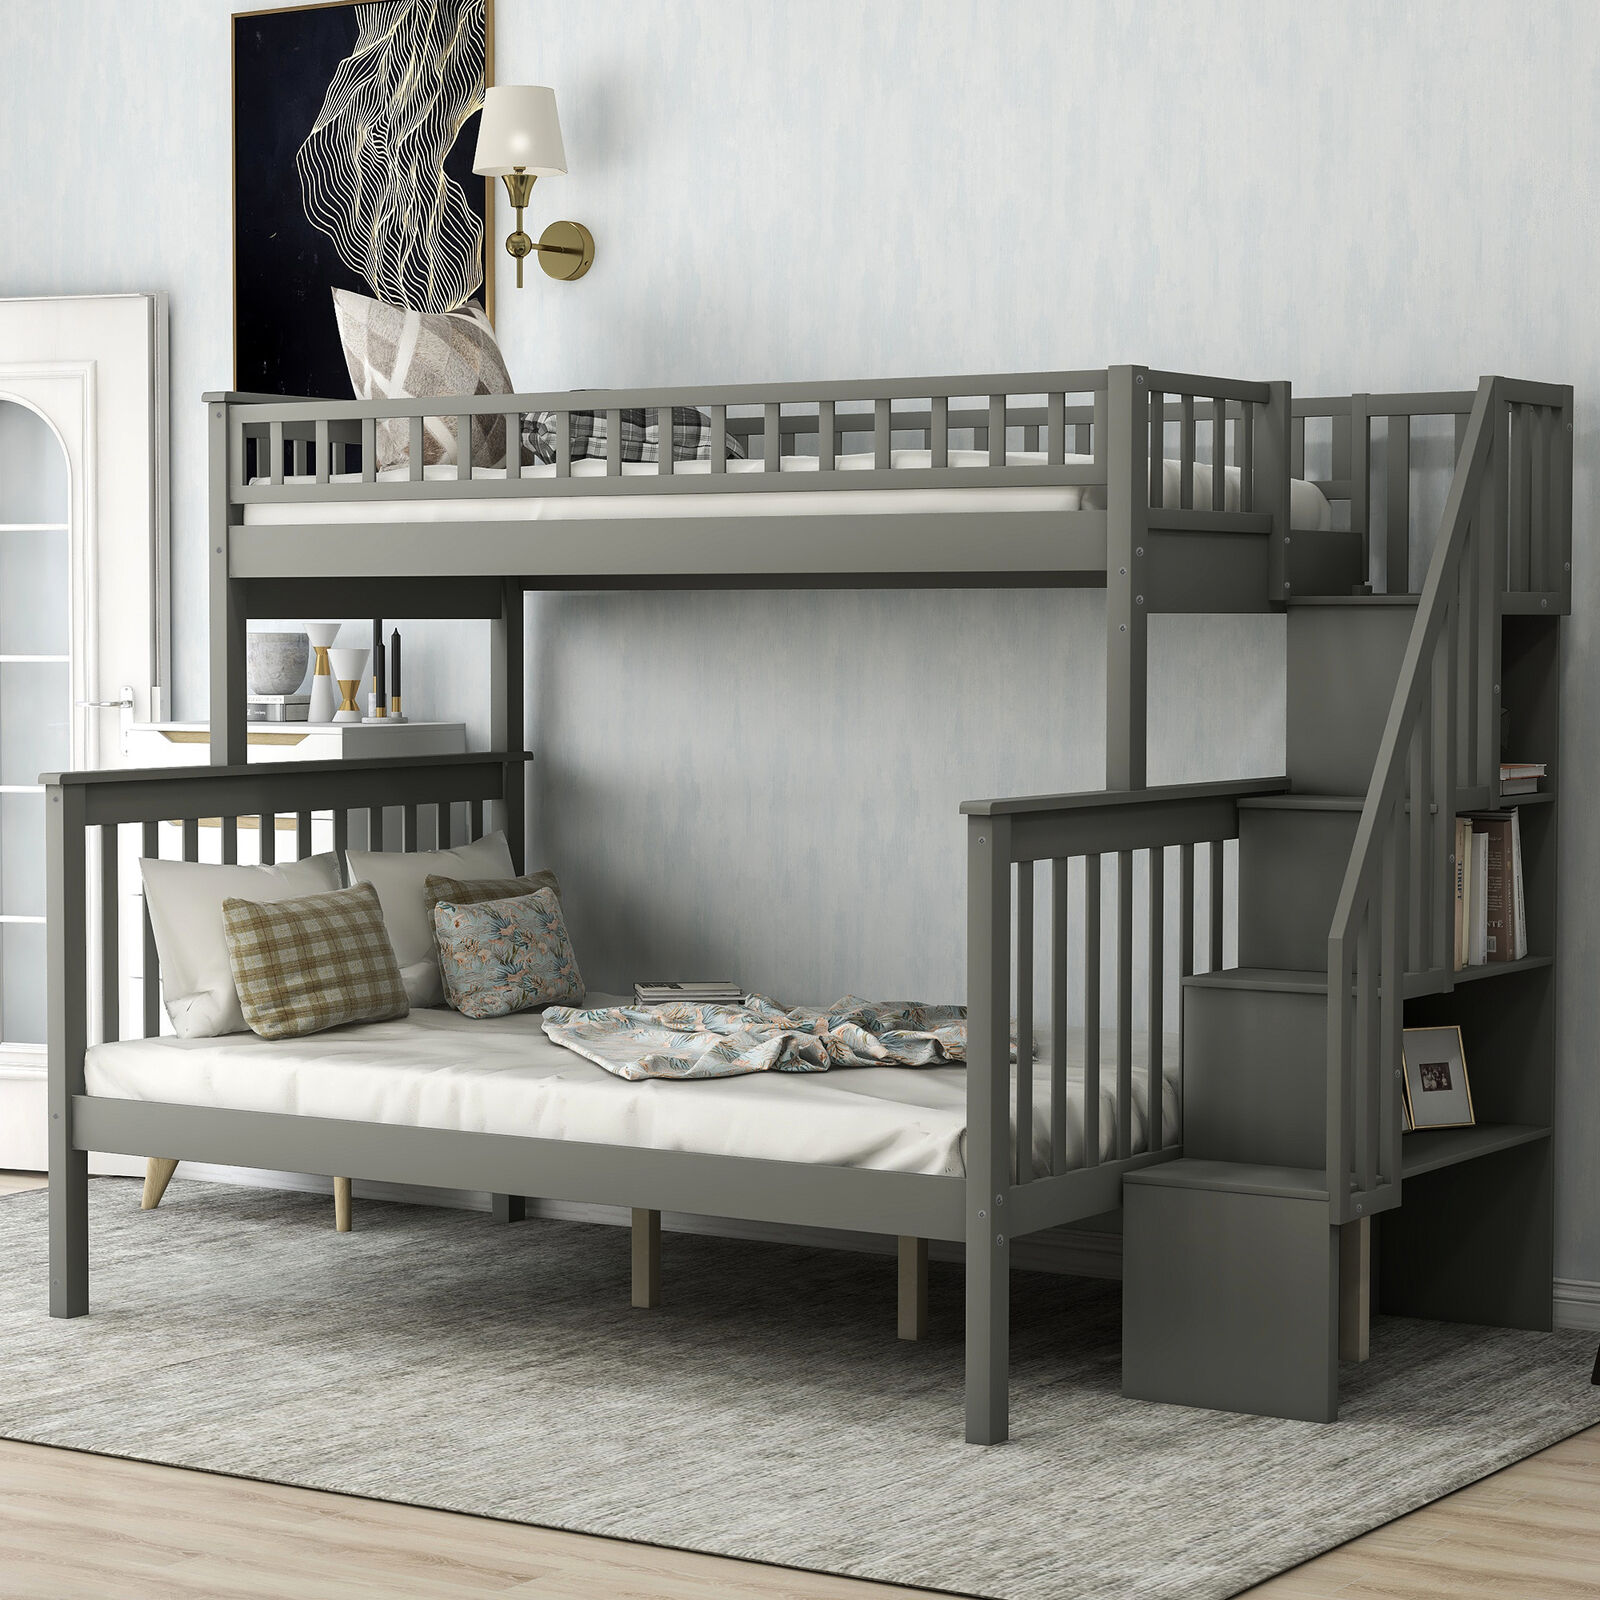 Twin Over Twin Bunk Bed With Trundle 3 Beds Wood Storage Drawers